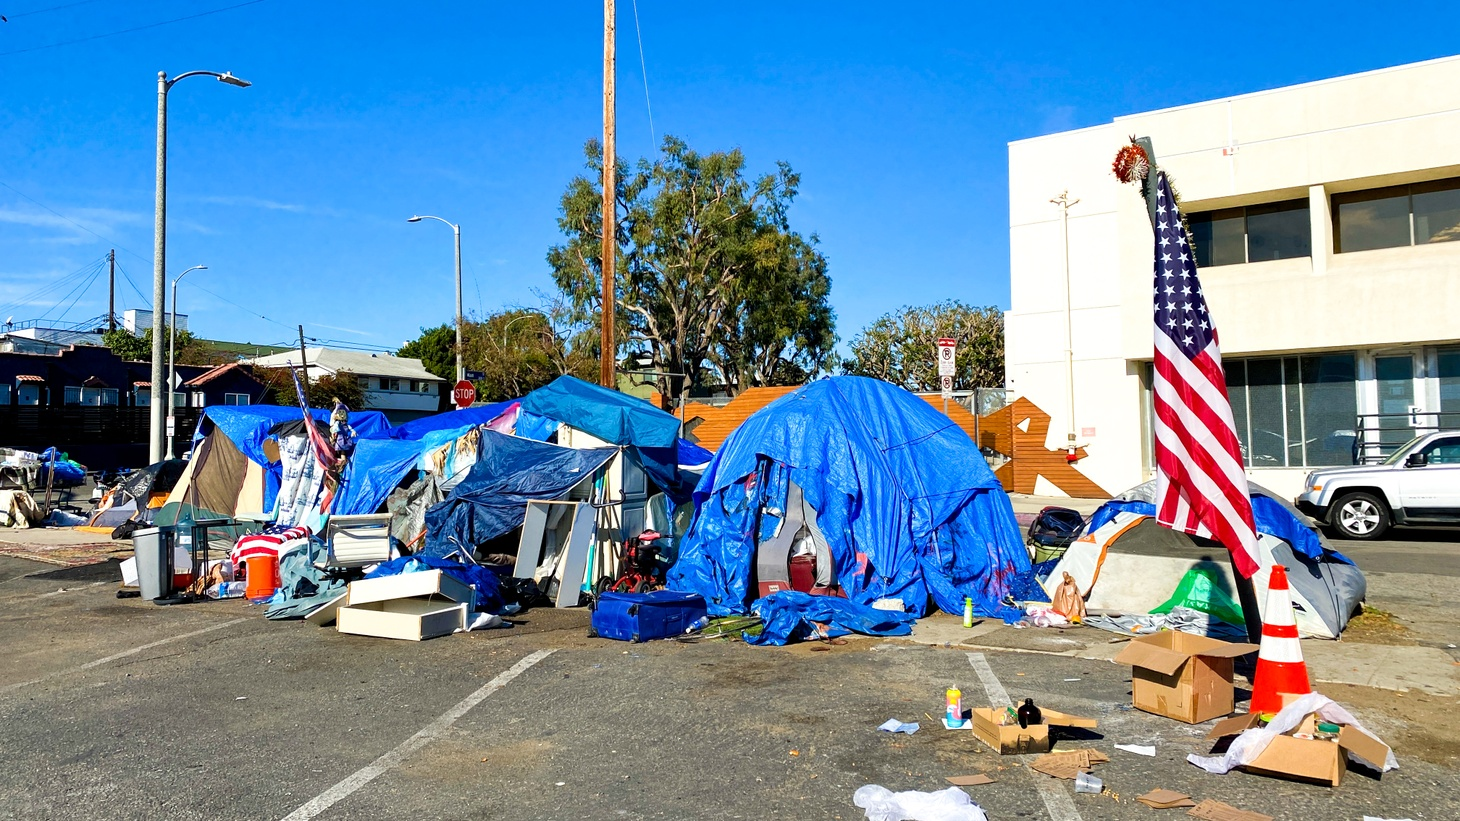 "A homeless encampment sits near Main St. in Santa Monica, February 2021. ""Pre-pandemic, LA defenders could dismiss criticism by pointing to declining crime, rising graduation rates, or ambitious plans to fight homelessness. But the coronavirus made LA's deeper problems undeniable. COVID followed the map of LA's inequality, killing at higher rates in our most overcrowded and underserved communities,"" writes Joe Mathews."